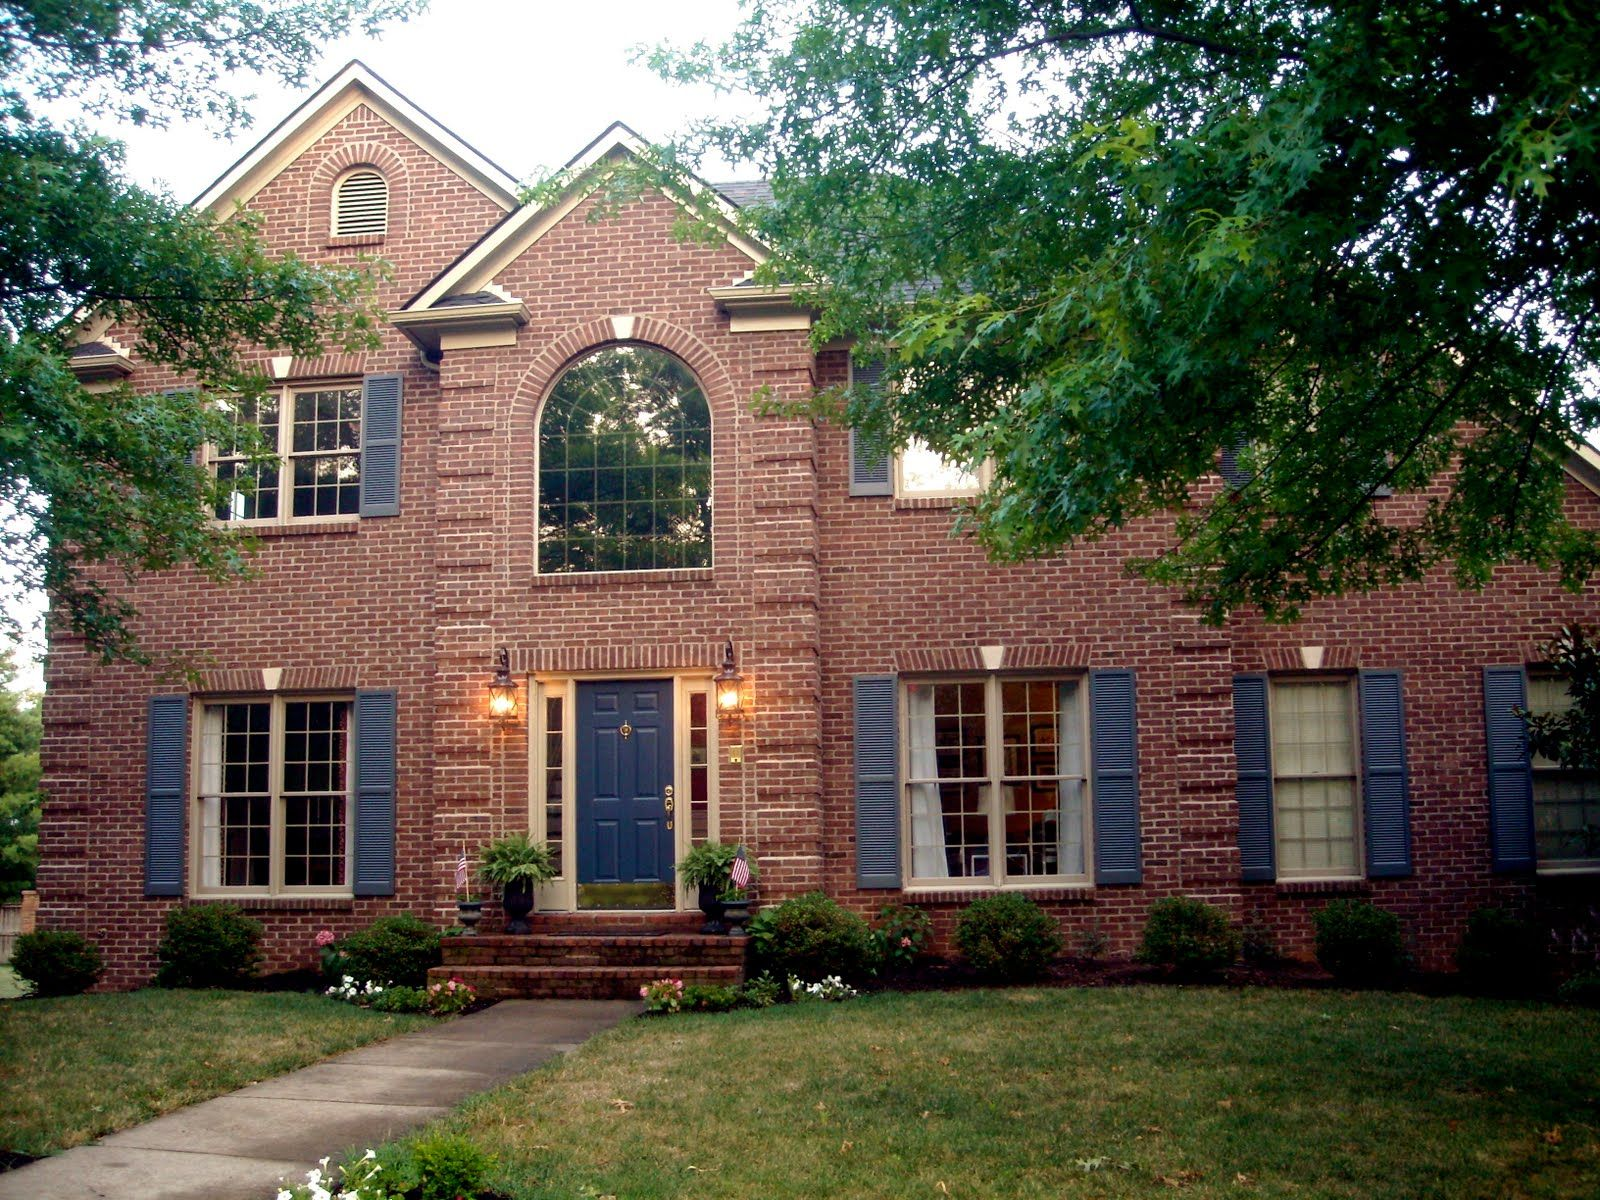 Exterior House Colors With Brick brick colors for house exterior | isn't that crazy! oh, the